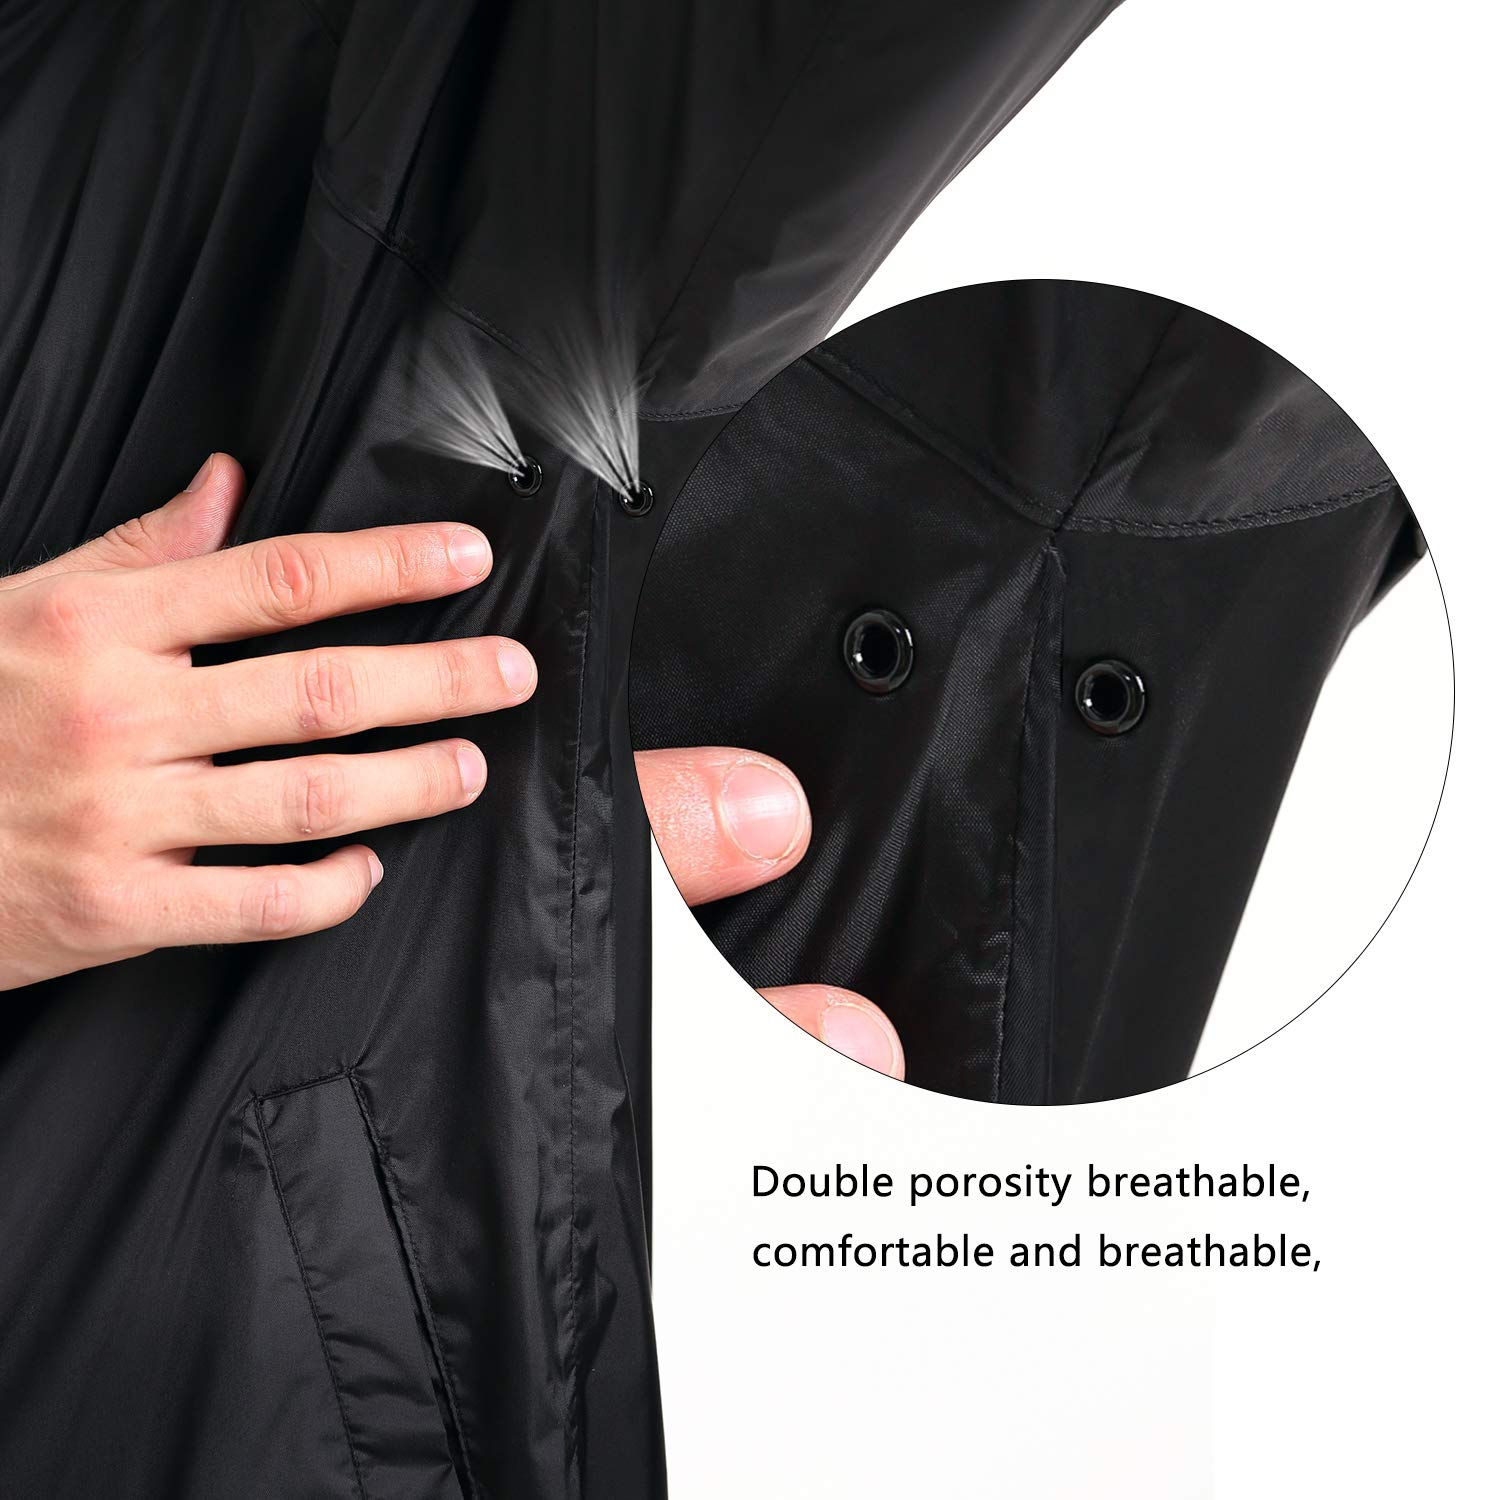 NICEWIN Portable Front Zip Rain Jacket-Pocket Size Breathable Hooded Pullover Raincoat Poncho for Men and Women